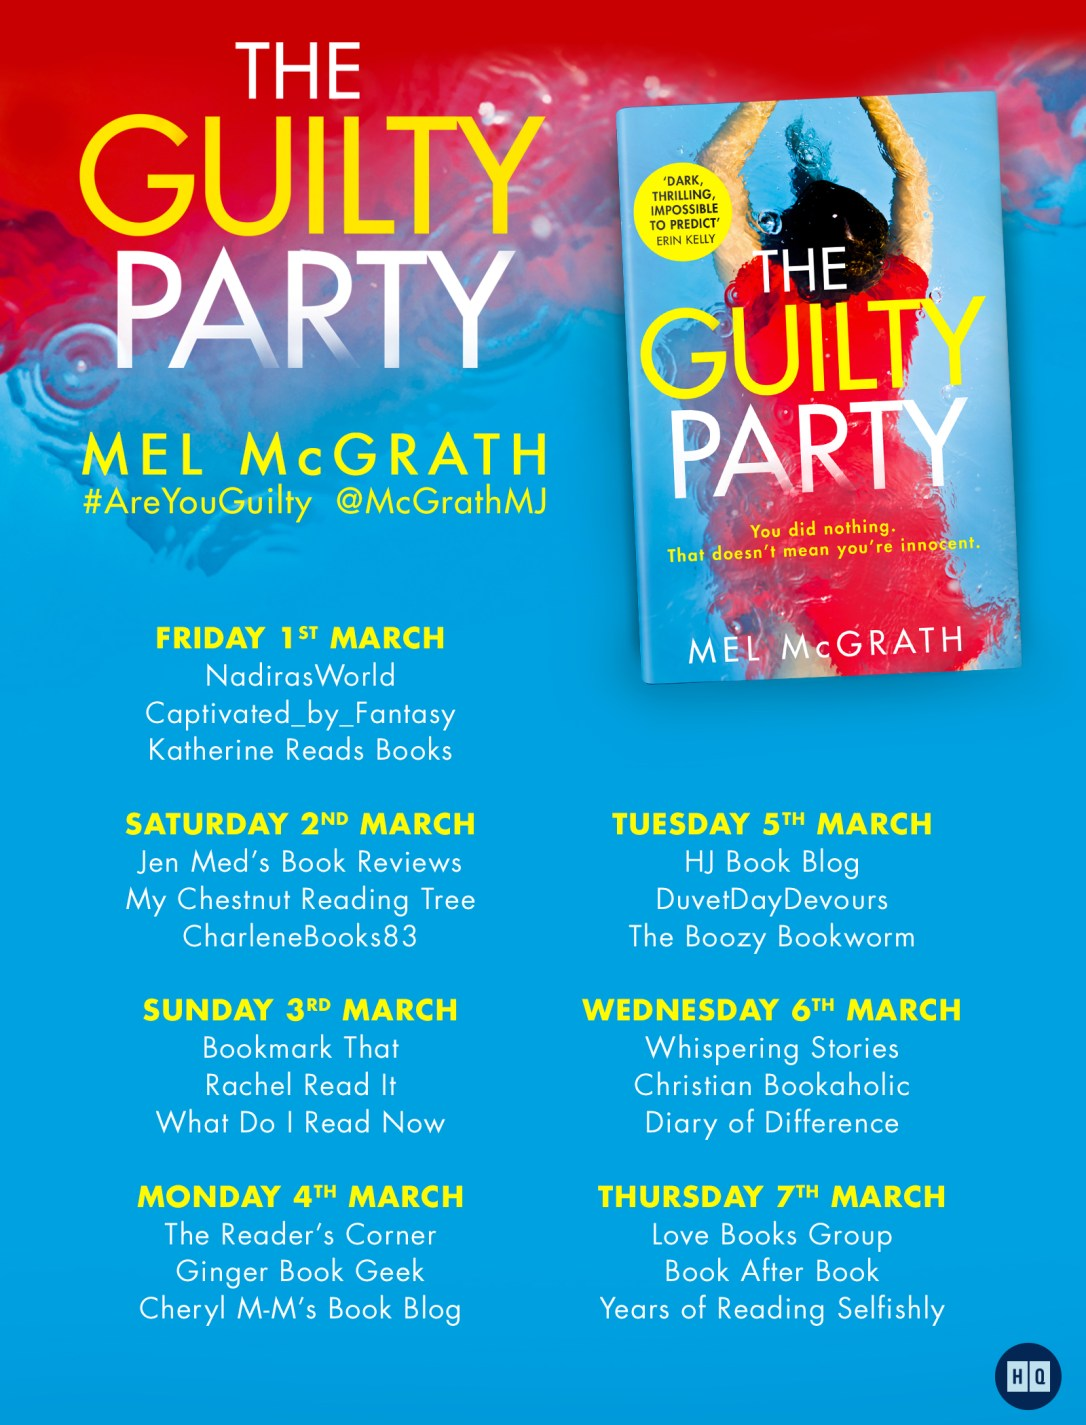 the guilty party blog tour mel mcgrath are you guilty areyouguilty diaryofdifference book review blog blogging